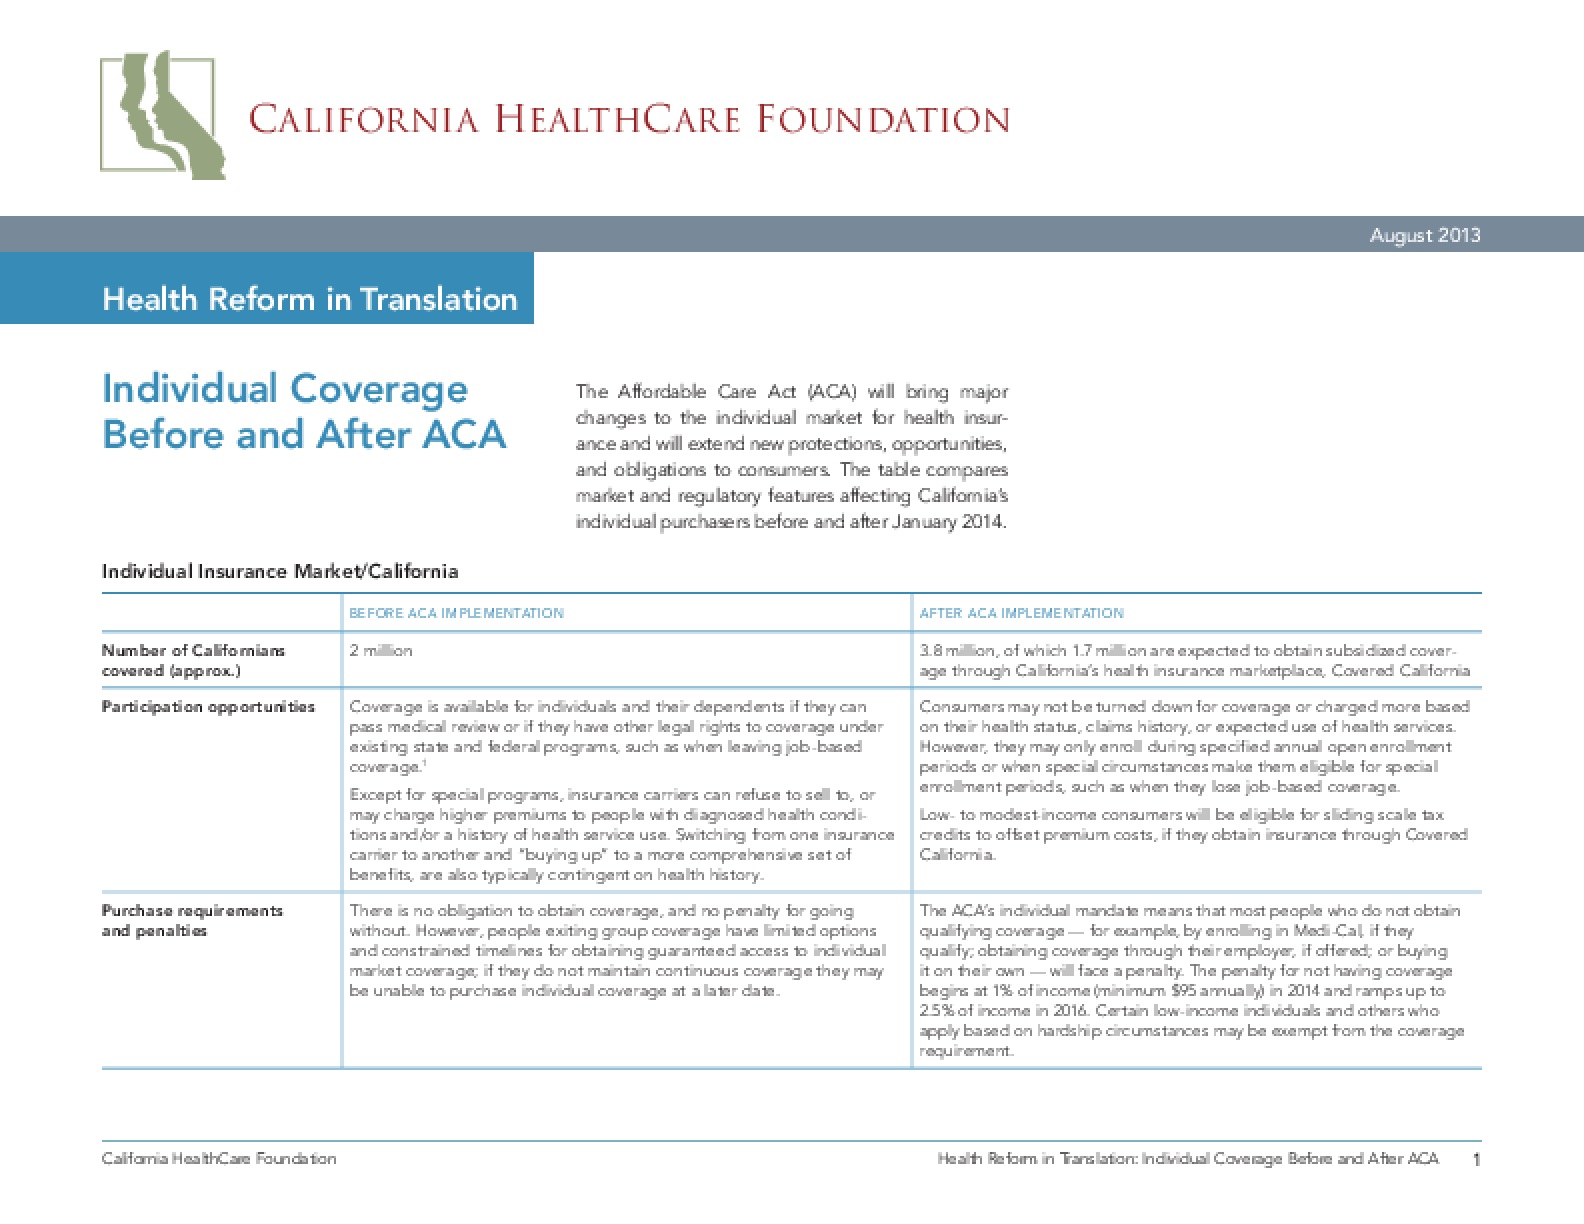 Health Reform in Translation: Individual Coverage Before and After ACA